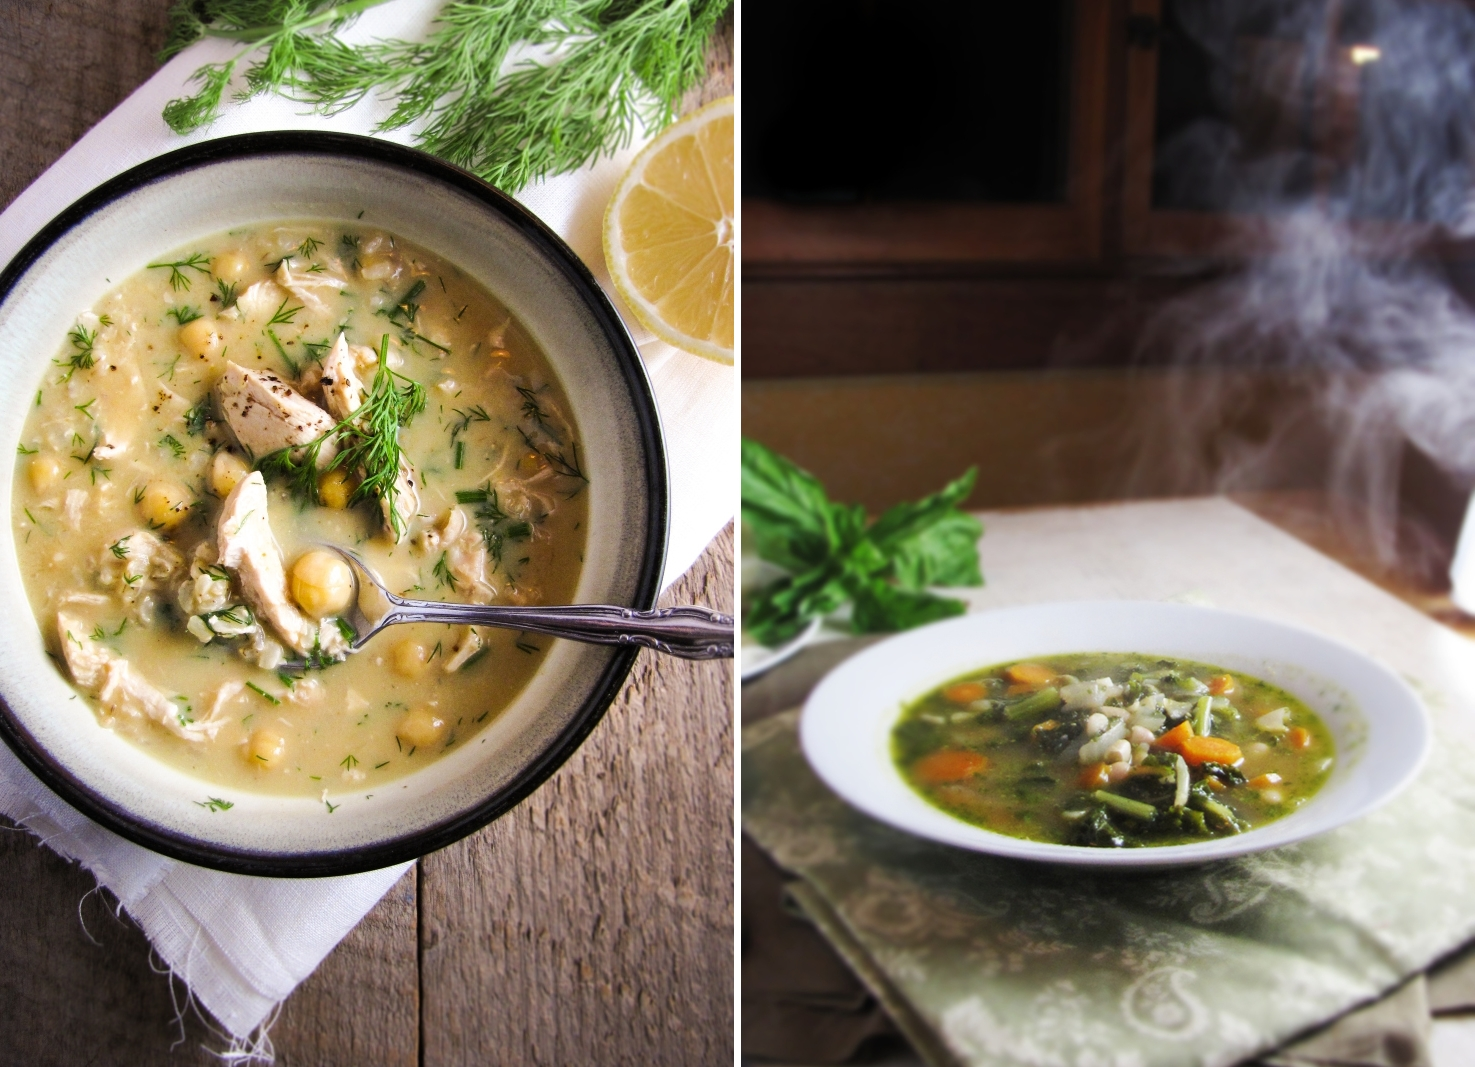 Winter Cleanse Week Two - Greek Egg and Lemon Soup with Chicken, Kale and White Bean Soup